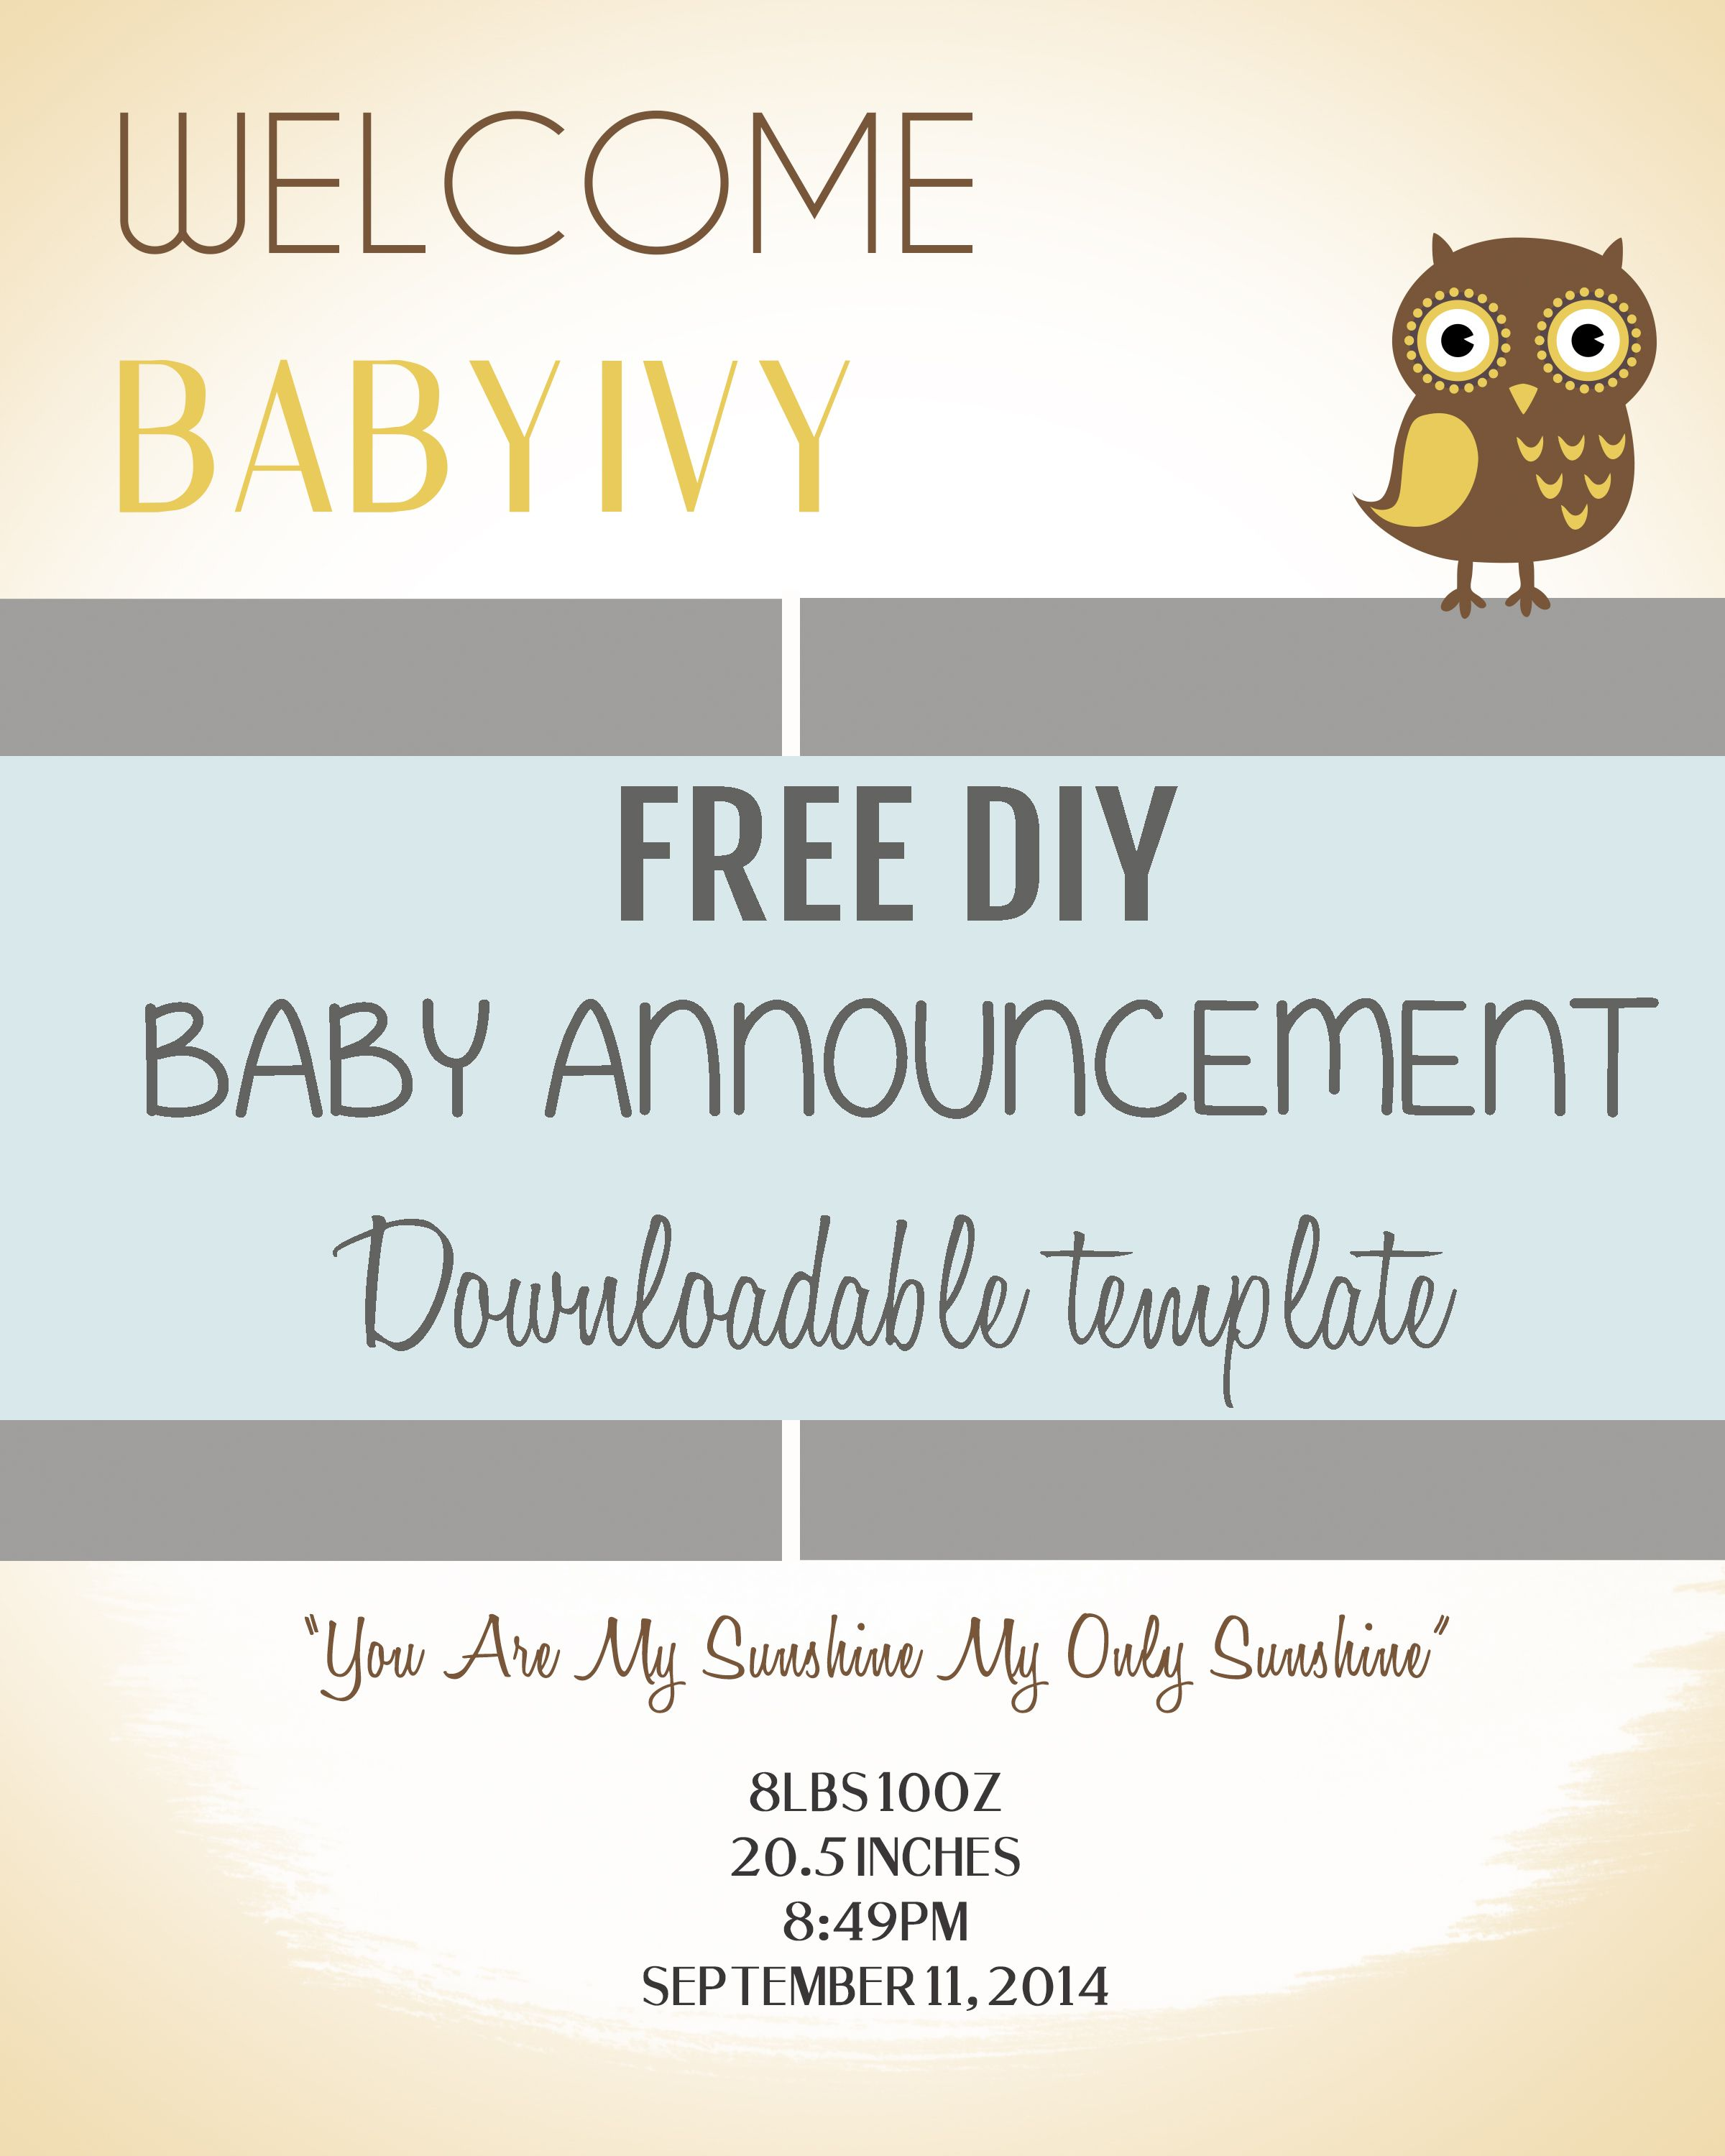 diy baby announcement template free psd download - Free Baby Announcement Templates